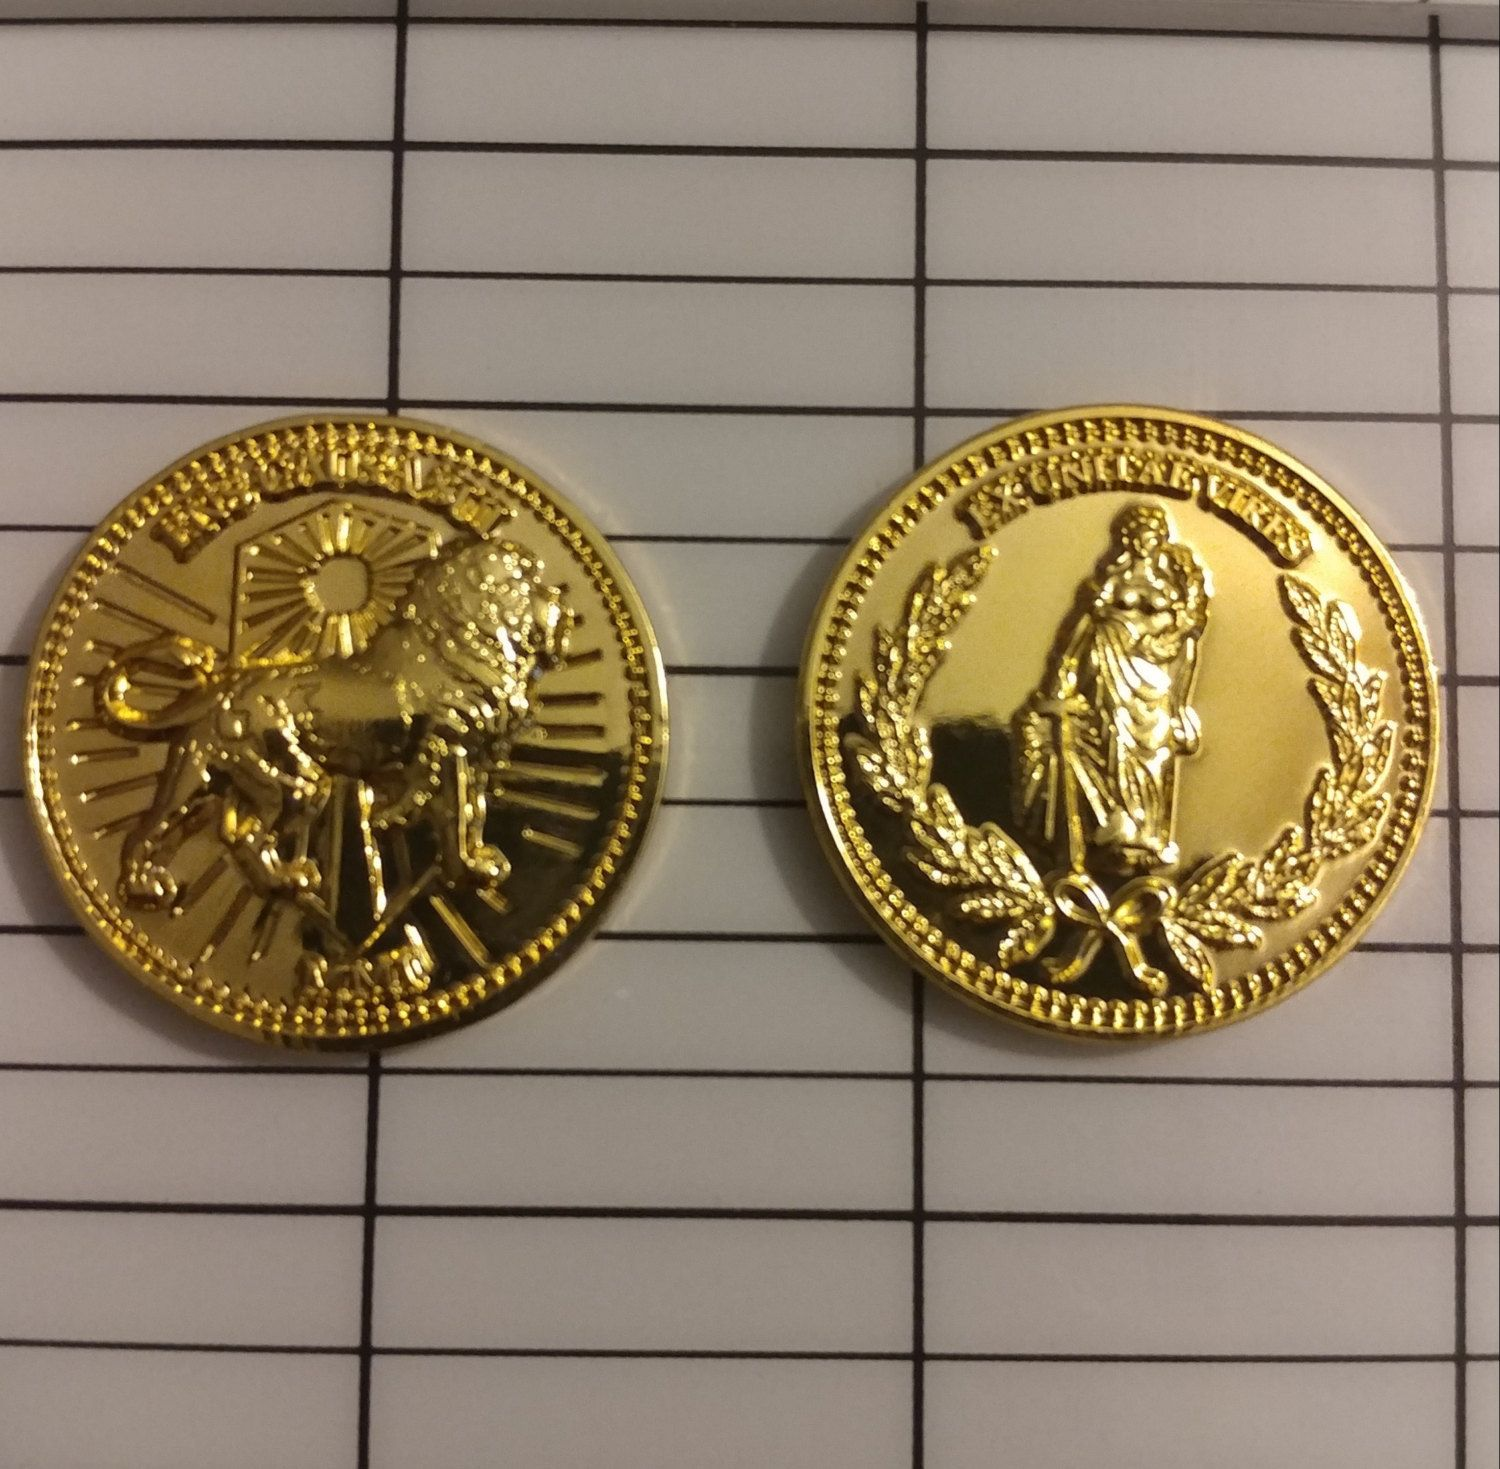 John wick coin replica movie prop approximately the size